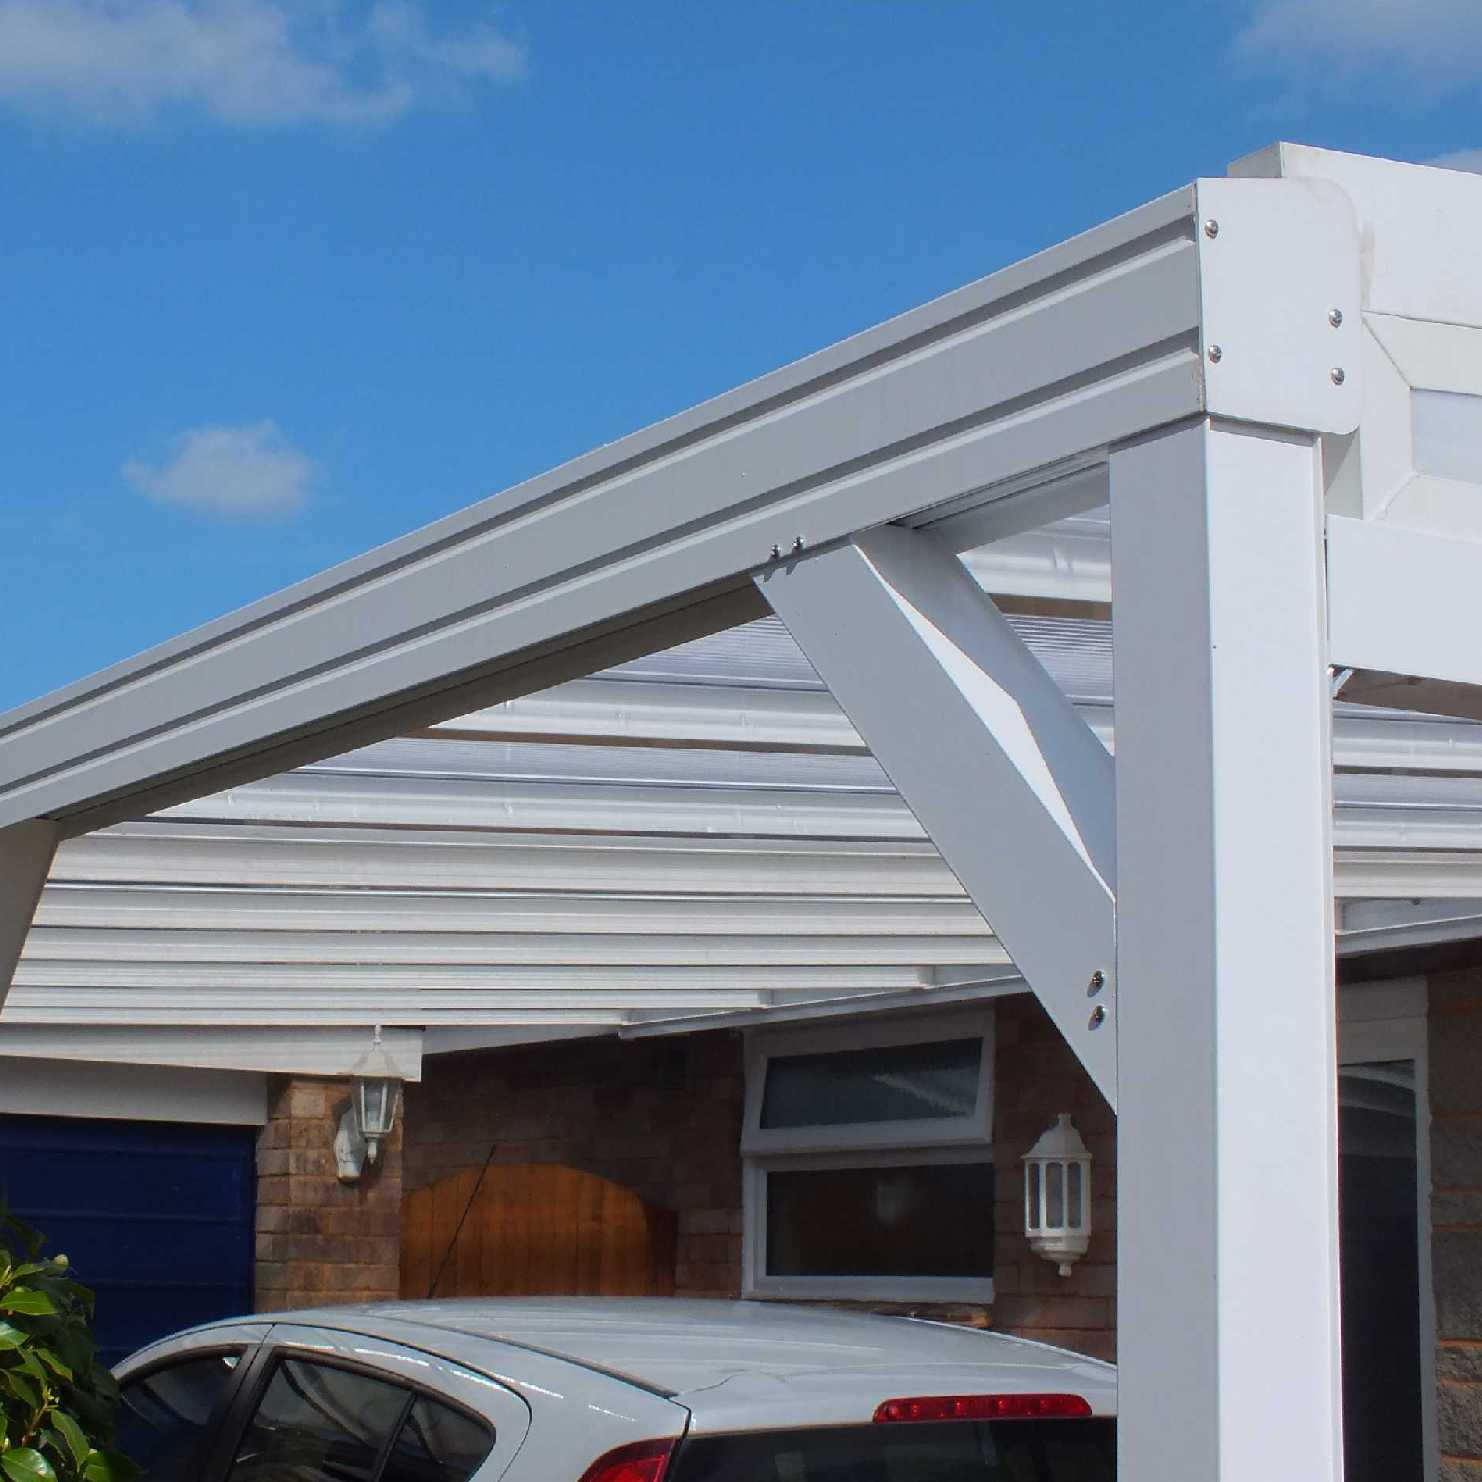 Great deals on Omega Smart Lean-To Canopy with 16mm Polycarbonate Glazing - 9.9m (W) x 3.5m (P), (5) Supporting Posts